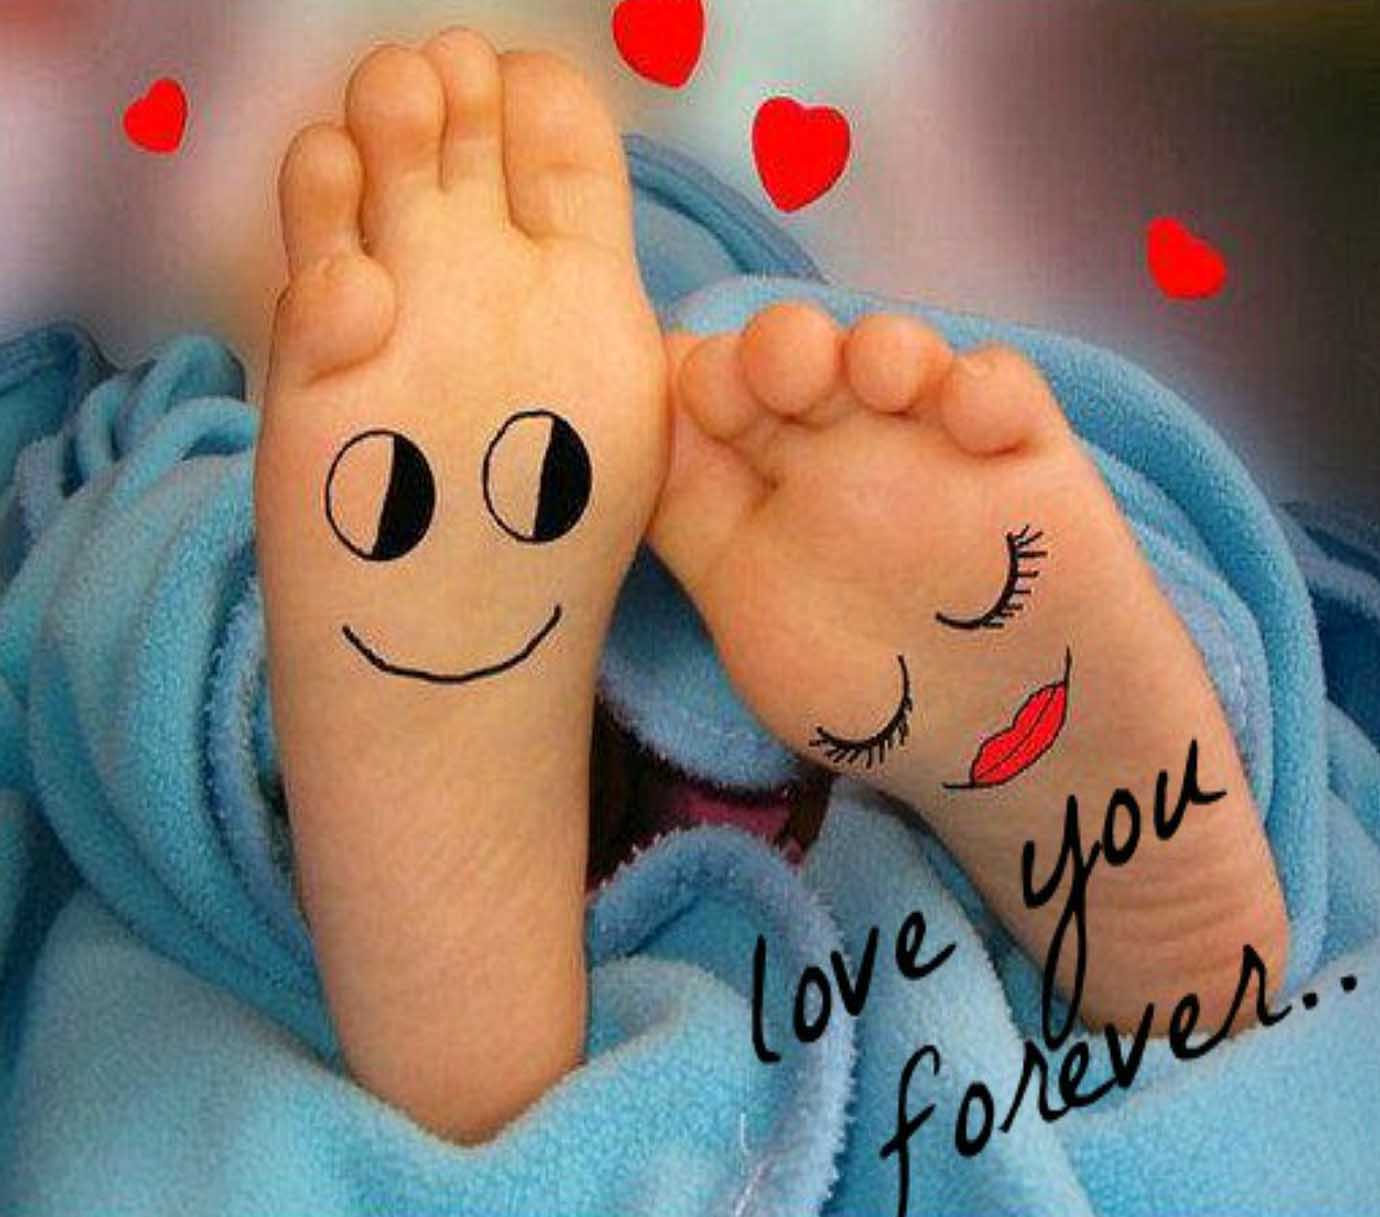 Download Animated Love Wallpapers For Mobile Elegance 1380x1217